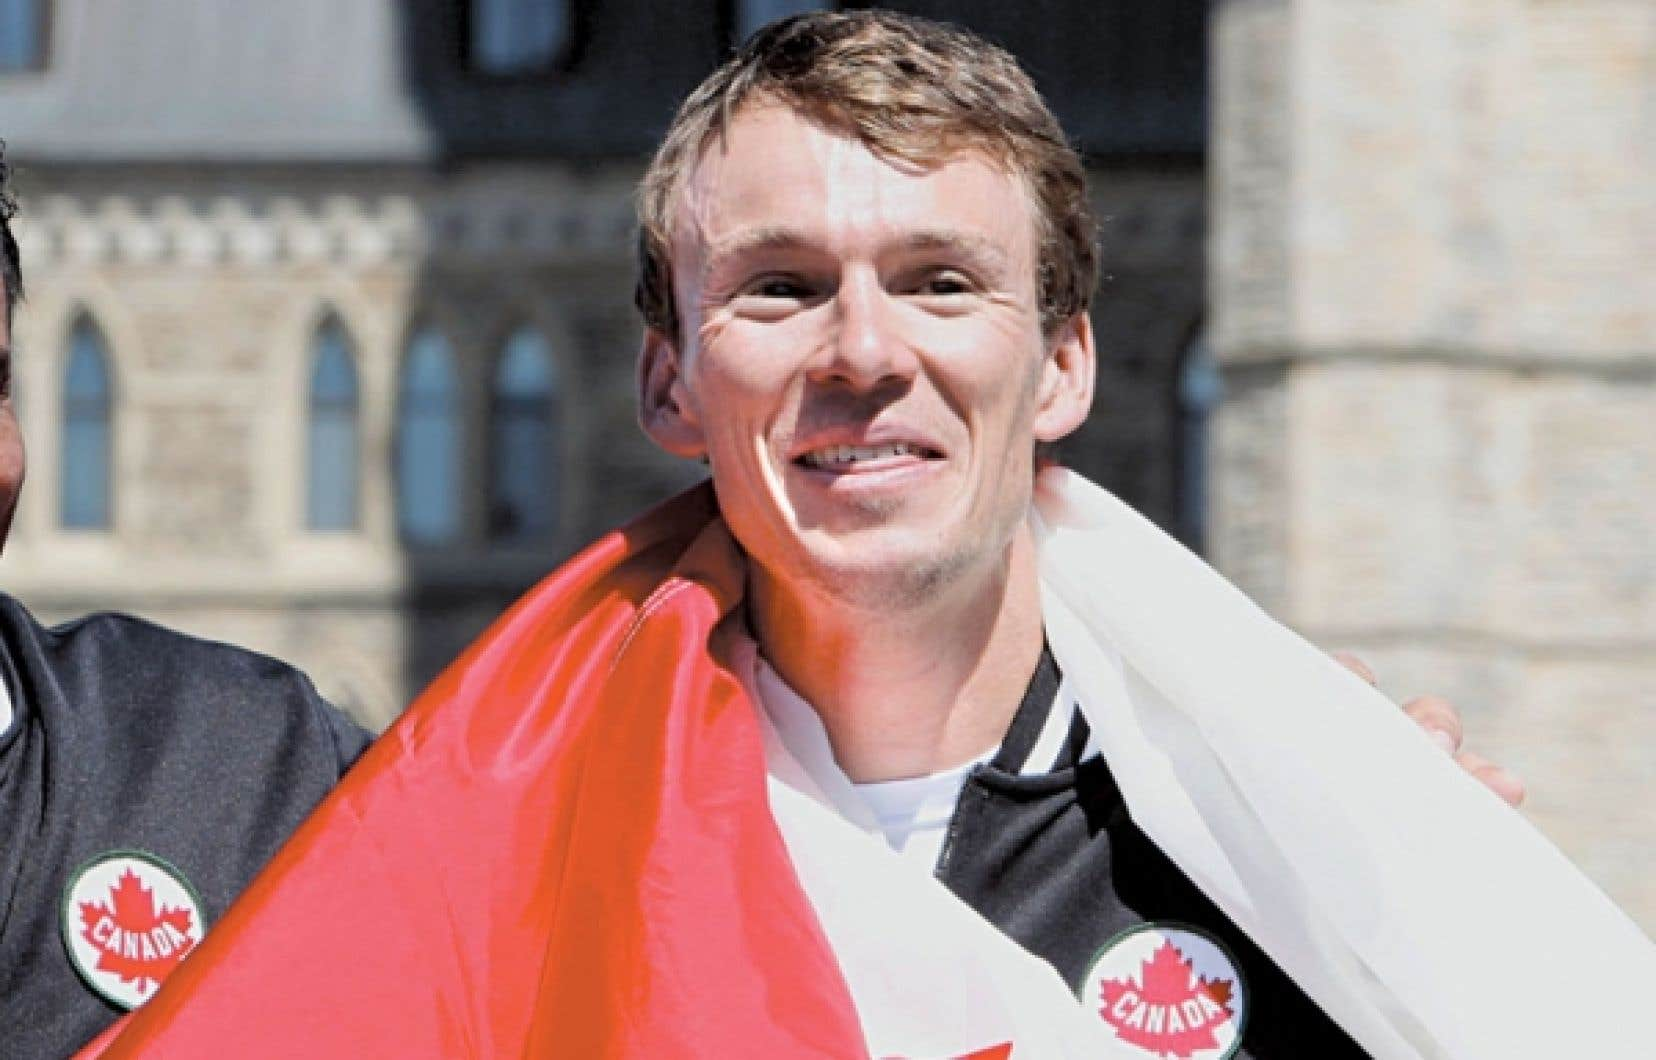 Le triathlonien Simon Whitfield drapé de l'unifolié